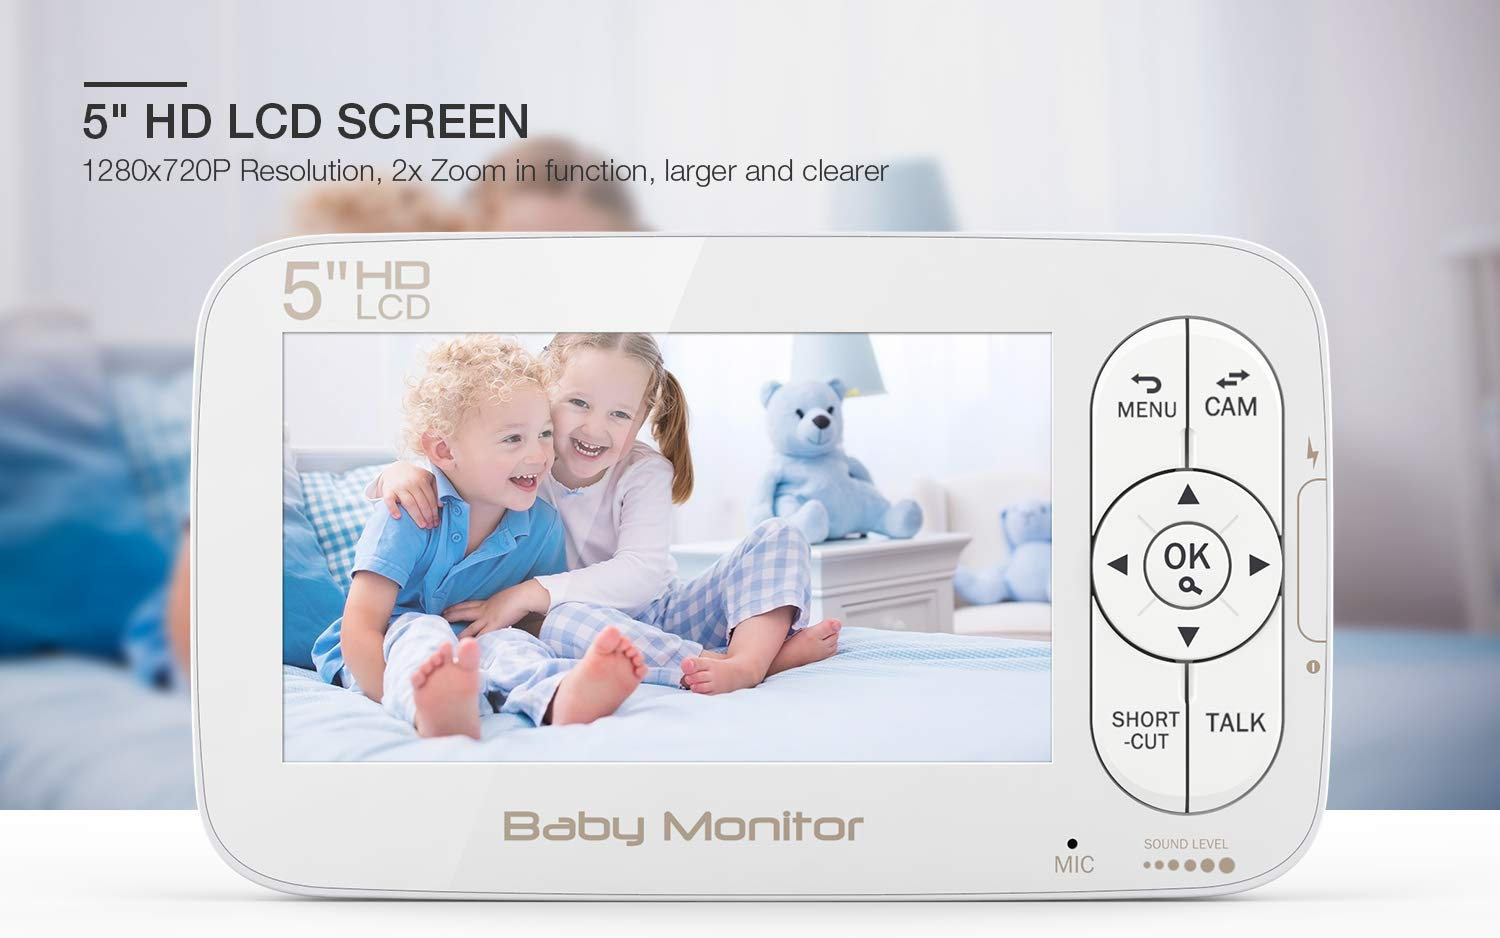 Baby Monitor, BOIFUN Baby Video Camera with 5'' 1280x720P HD Screen 2000mAh Rechargeable Battery with VOX Night Vision Temperature Monitor Two-Way Talk 355 Degree Remote Control Camera Baby/Elder/Pet BOIFUN Sleep Mode & Night Vision----In Sleep mode, The screen on the mother unit is black. Screen will light up when baby starts crying. Night vision distance is 5 meters, so you will never miss any moment of your baby, and it frees yourself from the hustle and bustle. You will be able to have your own time to read, watch TV, or even enjoy a couple of drinks with your husband. Bring you lots of fun. 2000mAh Battery----2000mAh high-capacity battery (mother unit), lasts up to 6 hours with full functions, and 20 hours in sleep mode, from testing results. Let you have longer time get rid of the shackles of the wires. Bring you longer time of fun. 300Meters Extra-Large Range----300m signal coverage area (outdoor test) allows you to cook happily downstairs, enjoy the sun in the pool, or even have a relaxing BBQ time with friends in terrace. Bring you bigger fun. 2